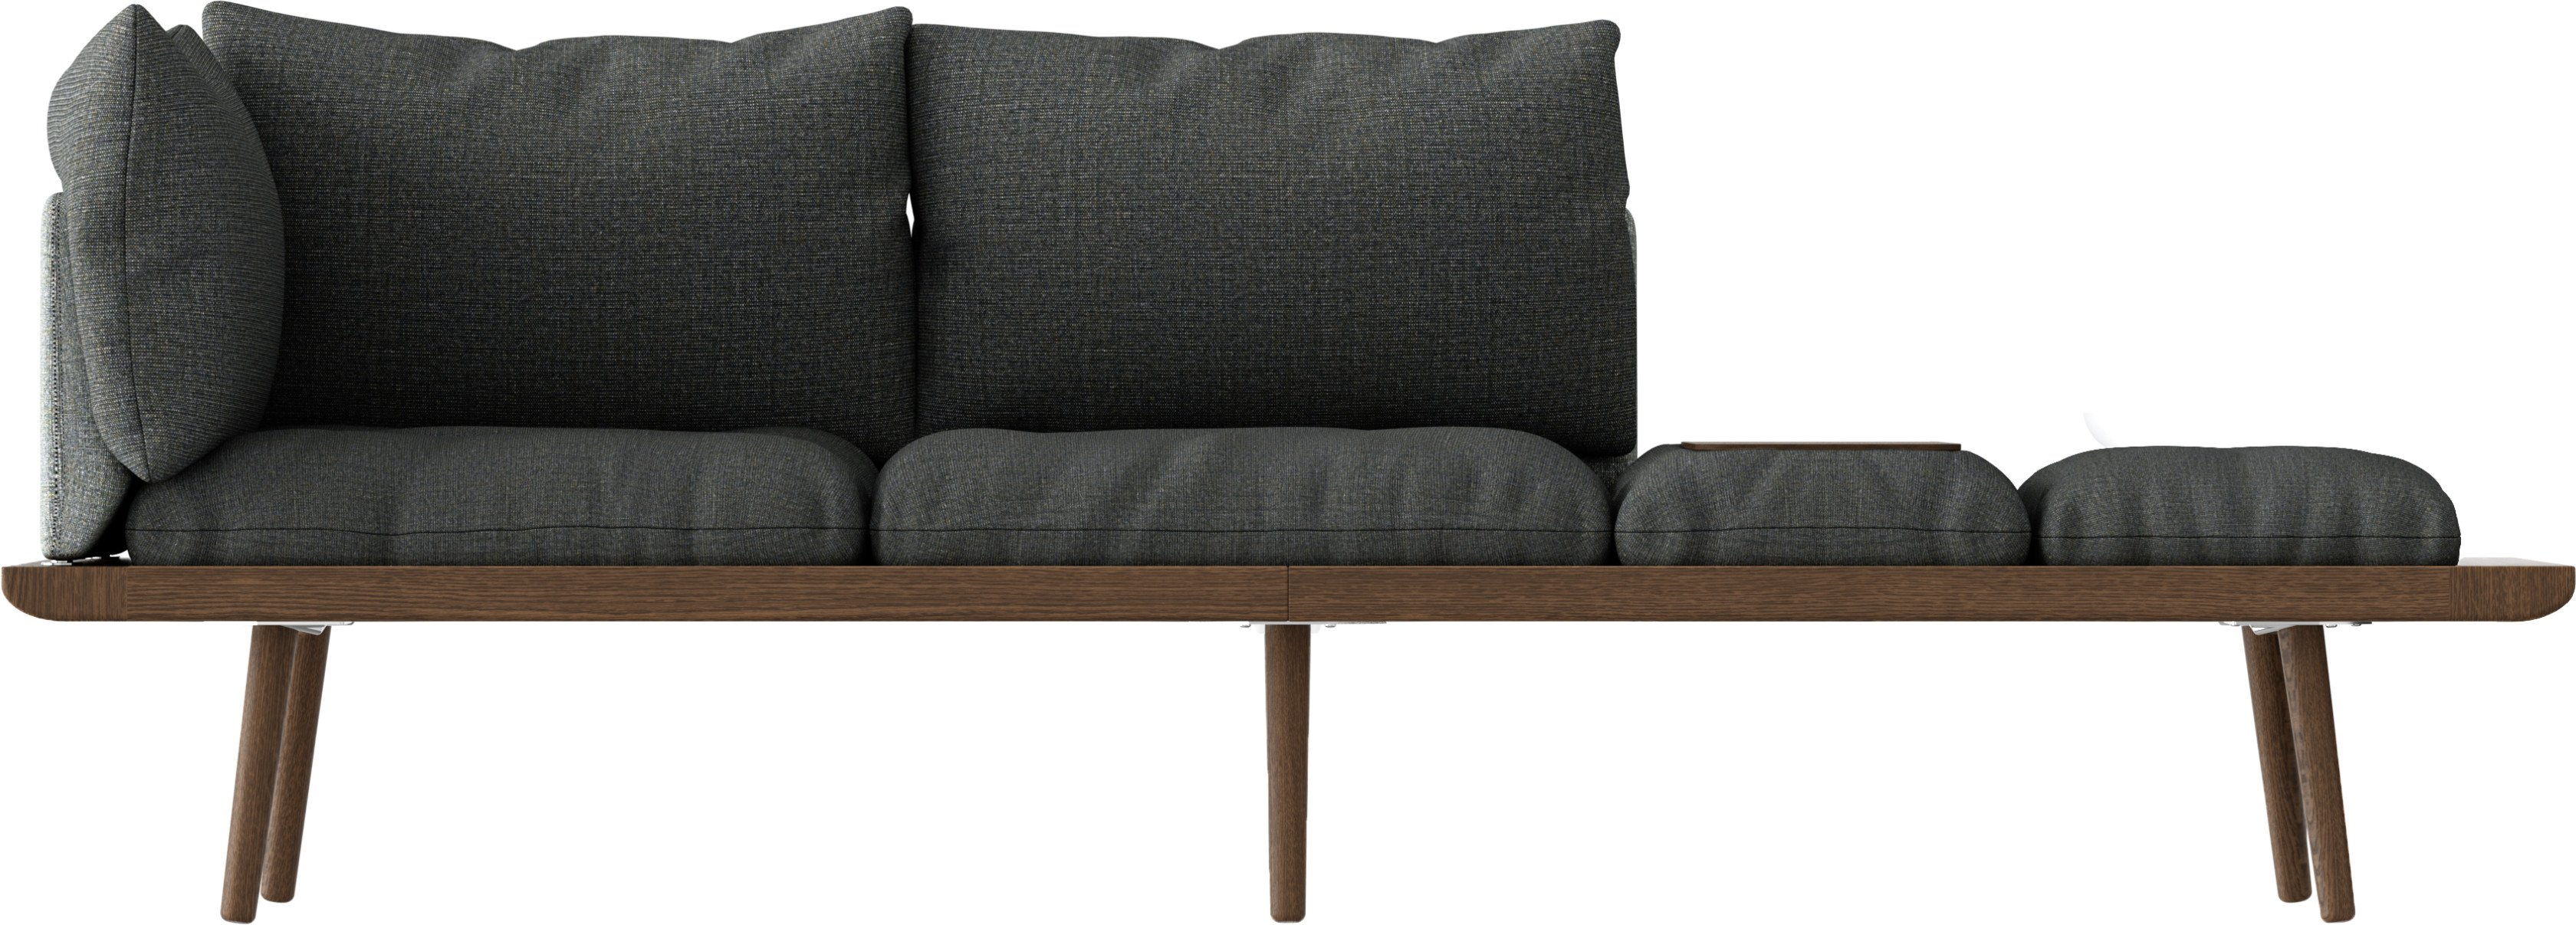 Lounge Around 3-seater Sofa Dark Oak by S. R. Christensen for UMAGE